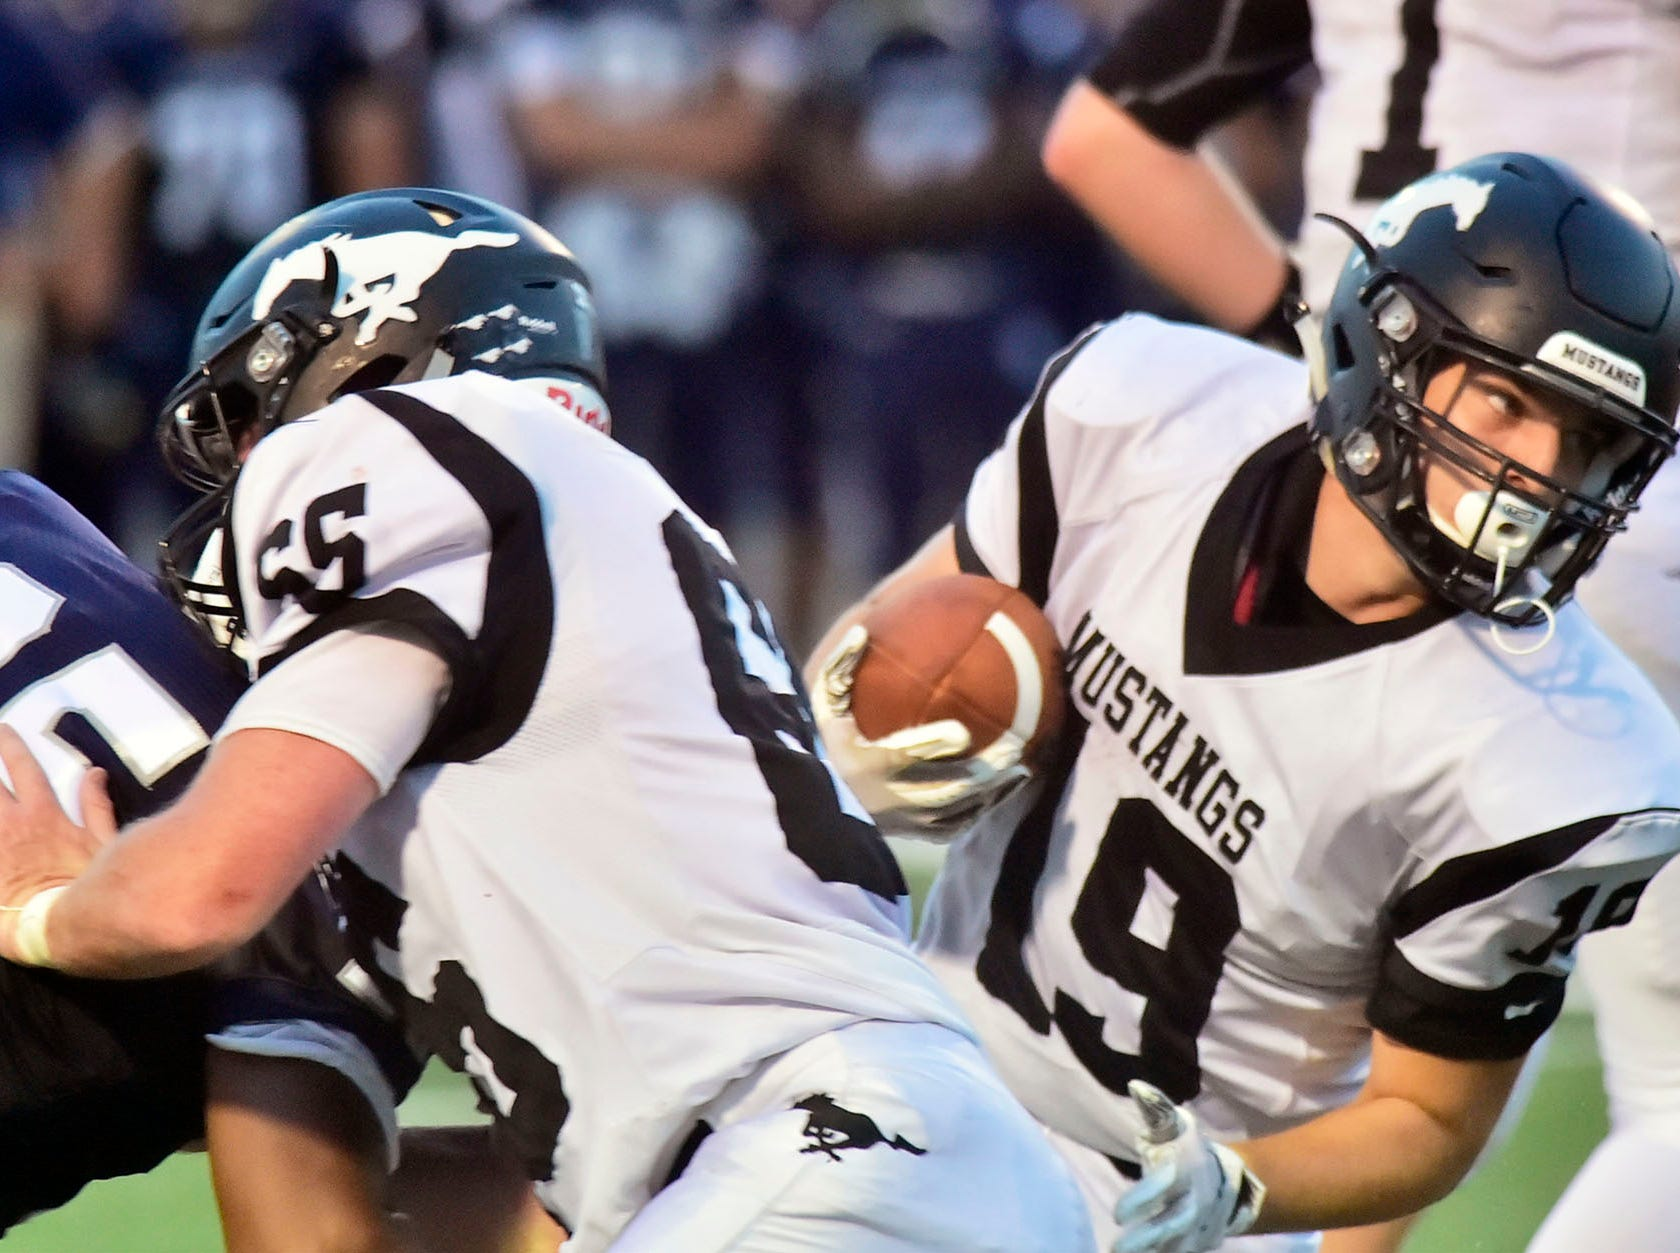 South Western's Nick Boone (19) runs the ball for the Mustangs. Chambersburg defeated South Western 51-26 in football on Friday, Aug. 31, 2018.